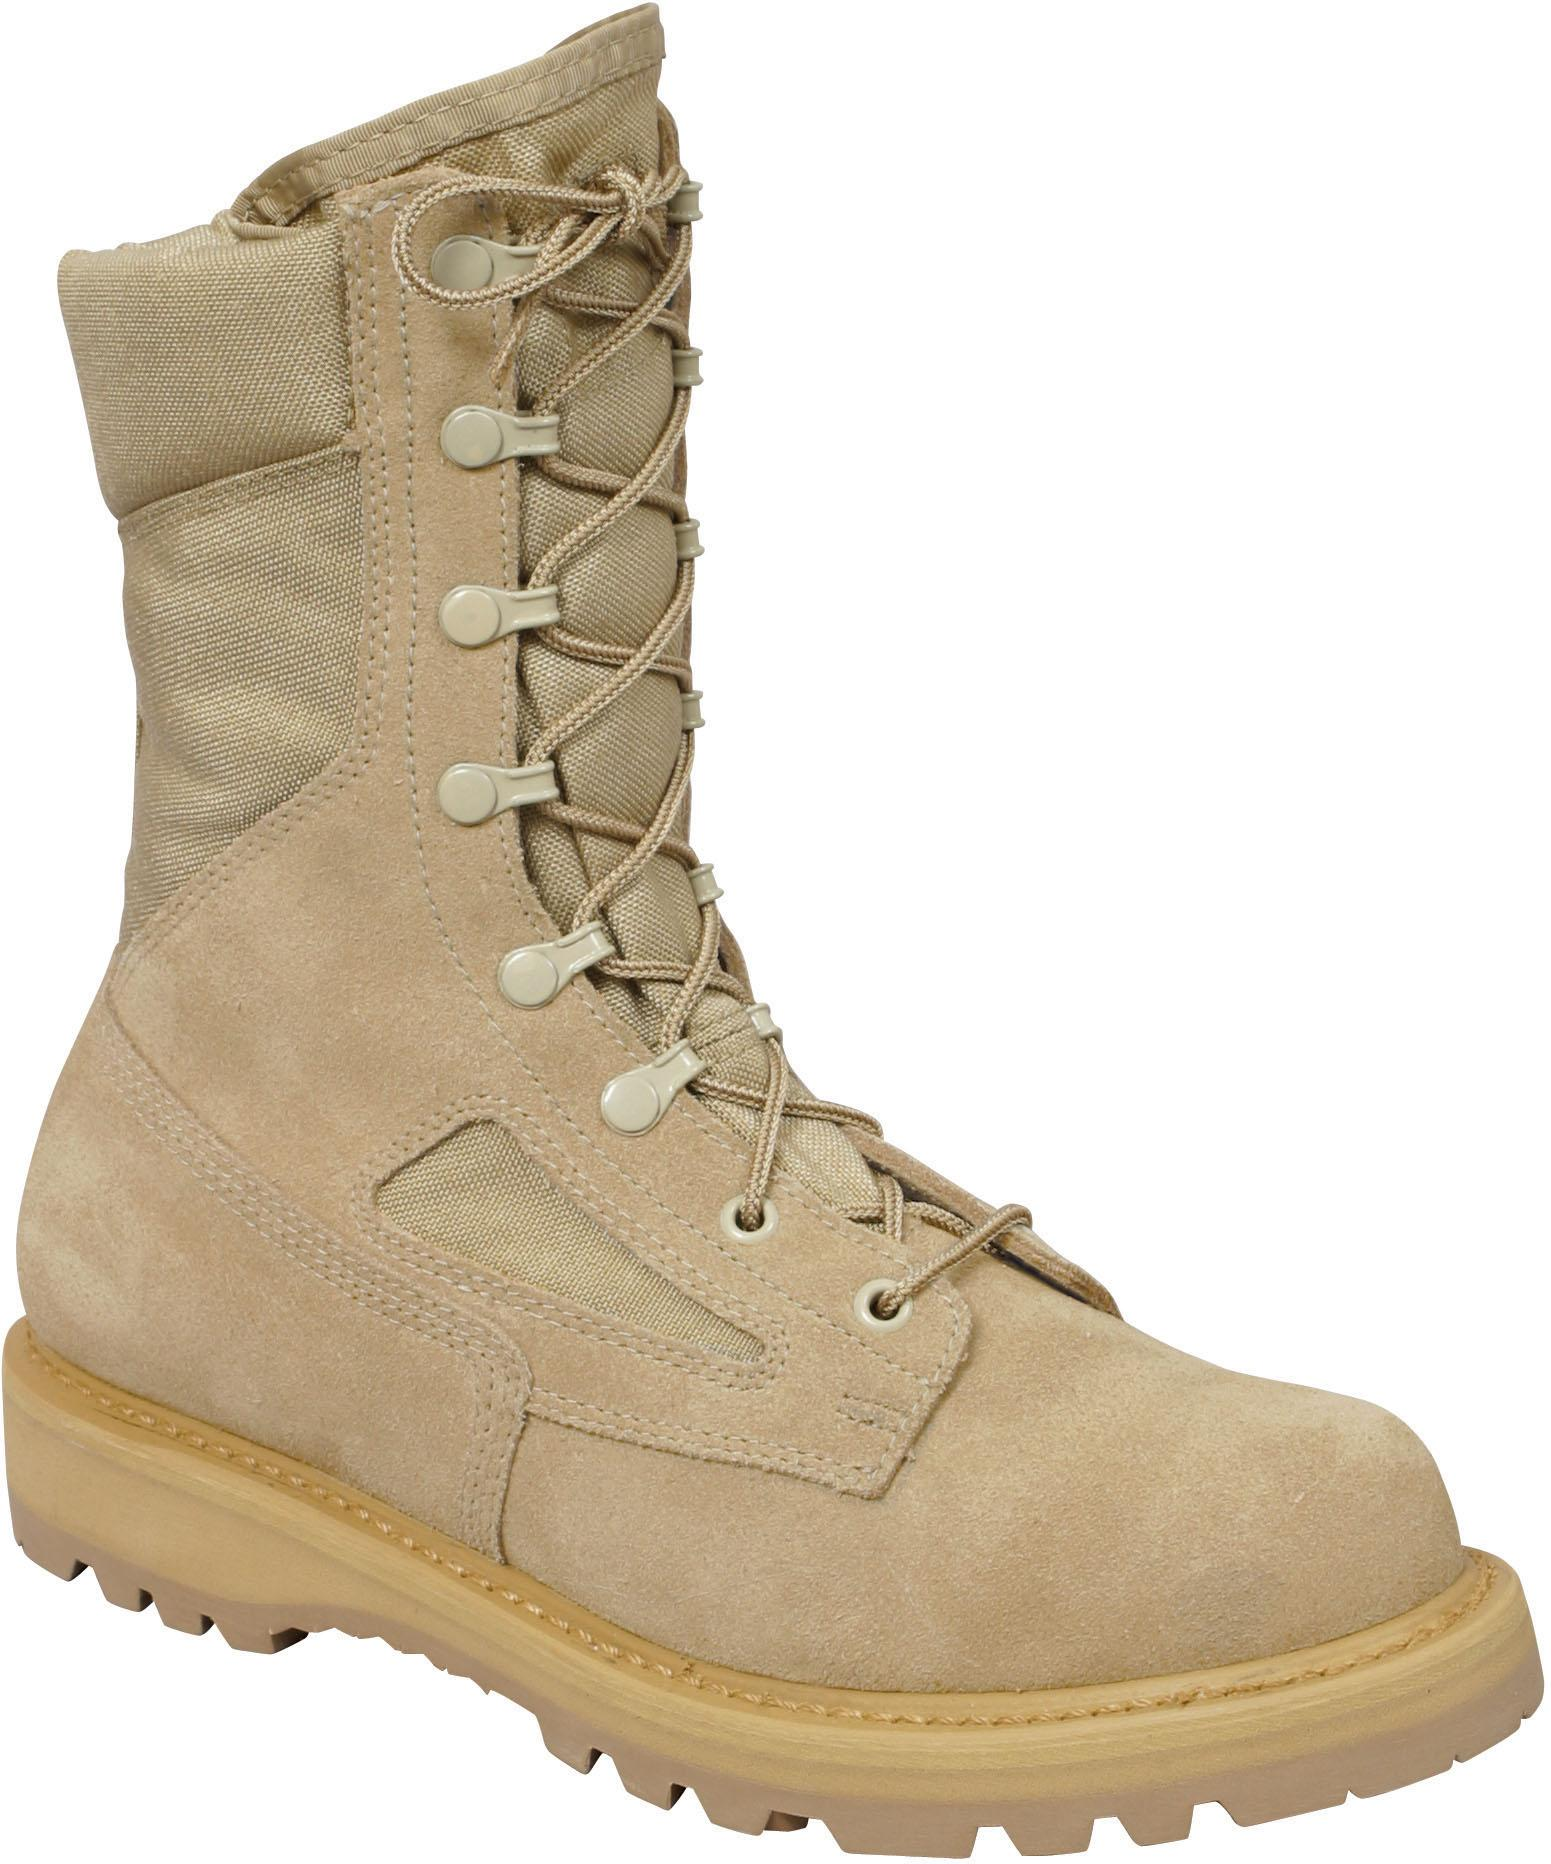 Free Shipping on many items across the worlds largest range of Rocky Boots. Find the perfect Christmas gift ideas with eBay.